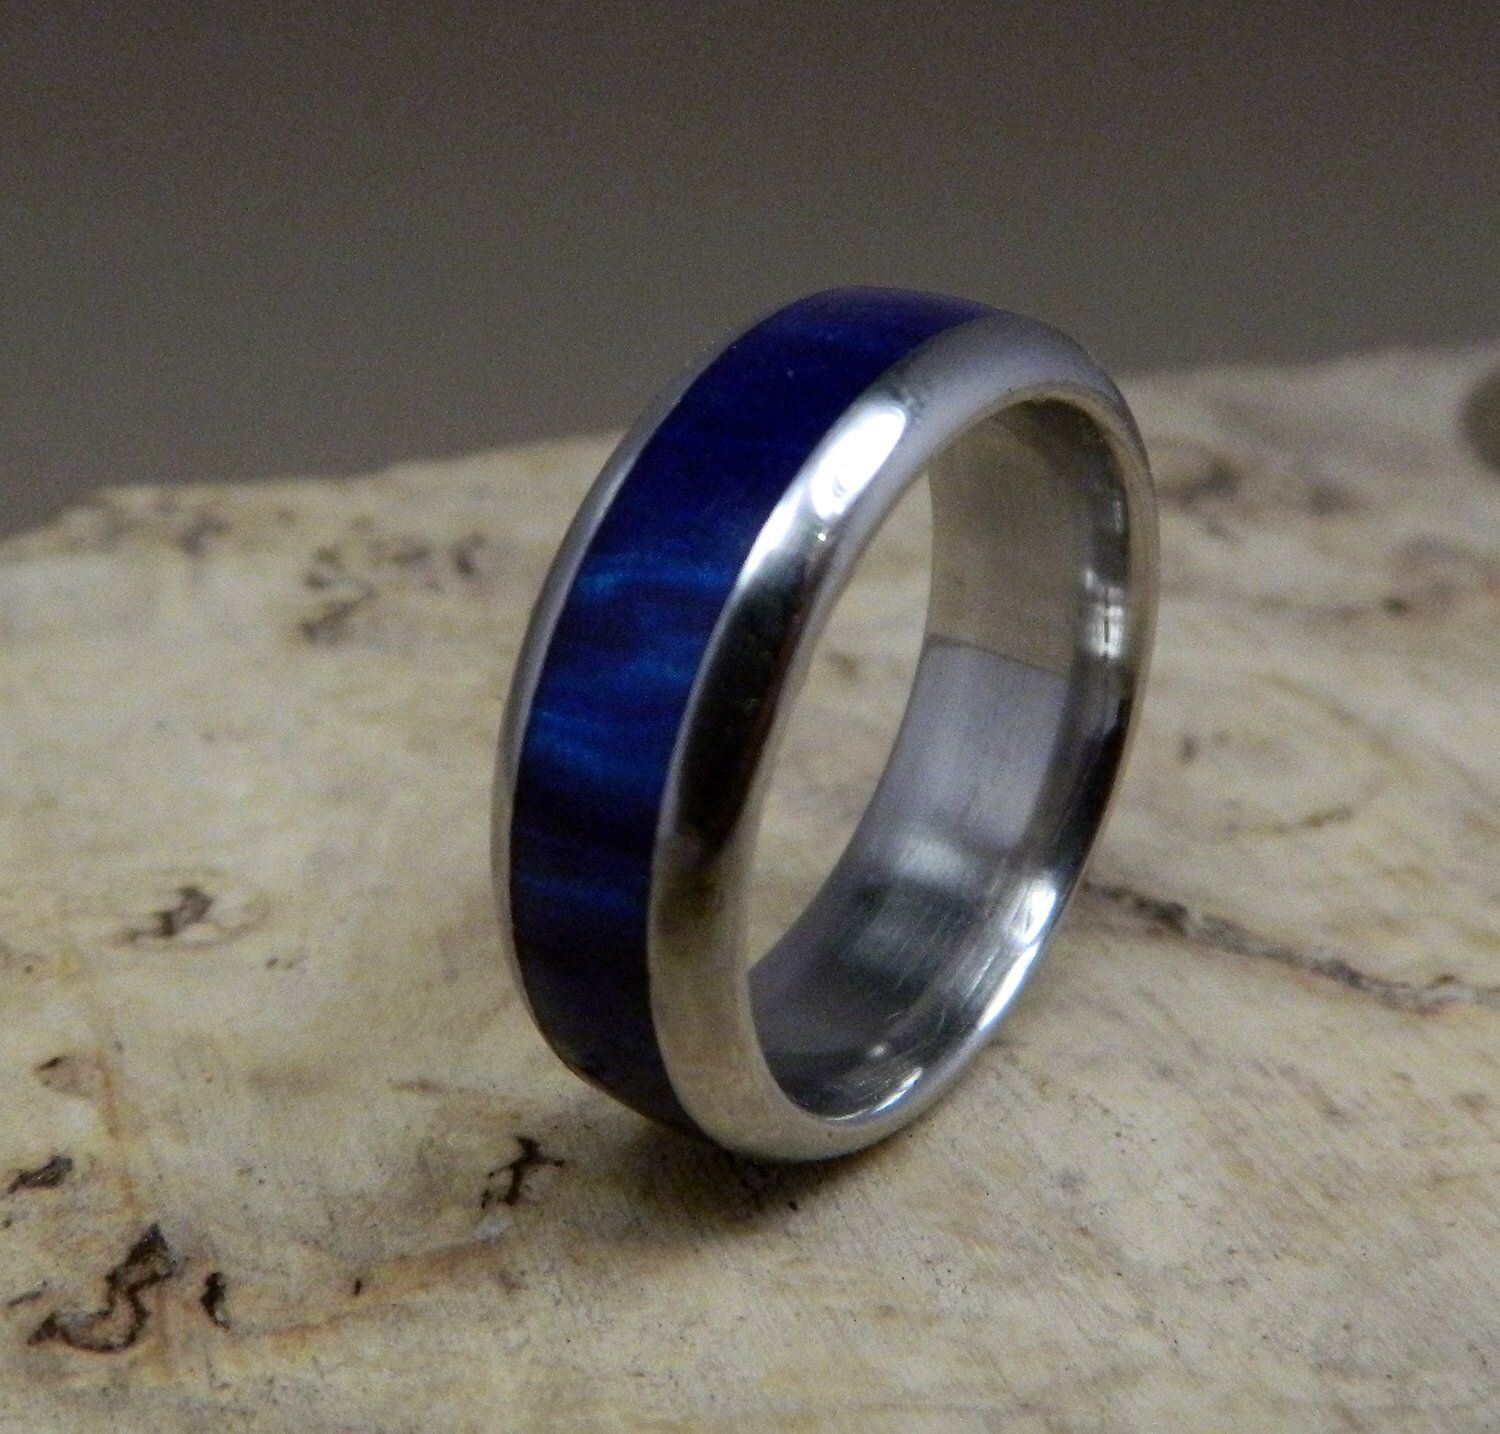 Mens Stainless Steel Ring with Cobalt Blue Inlay Free